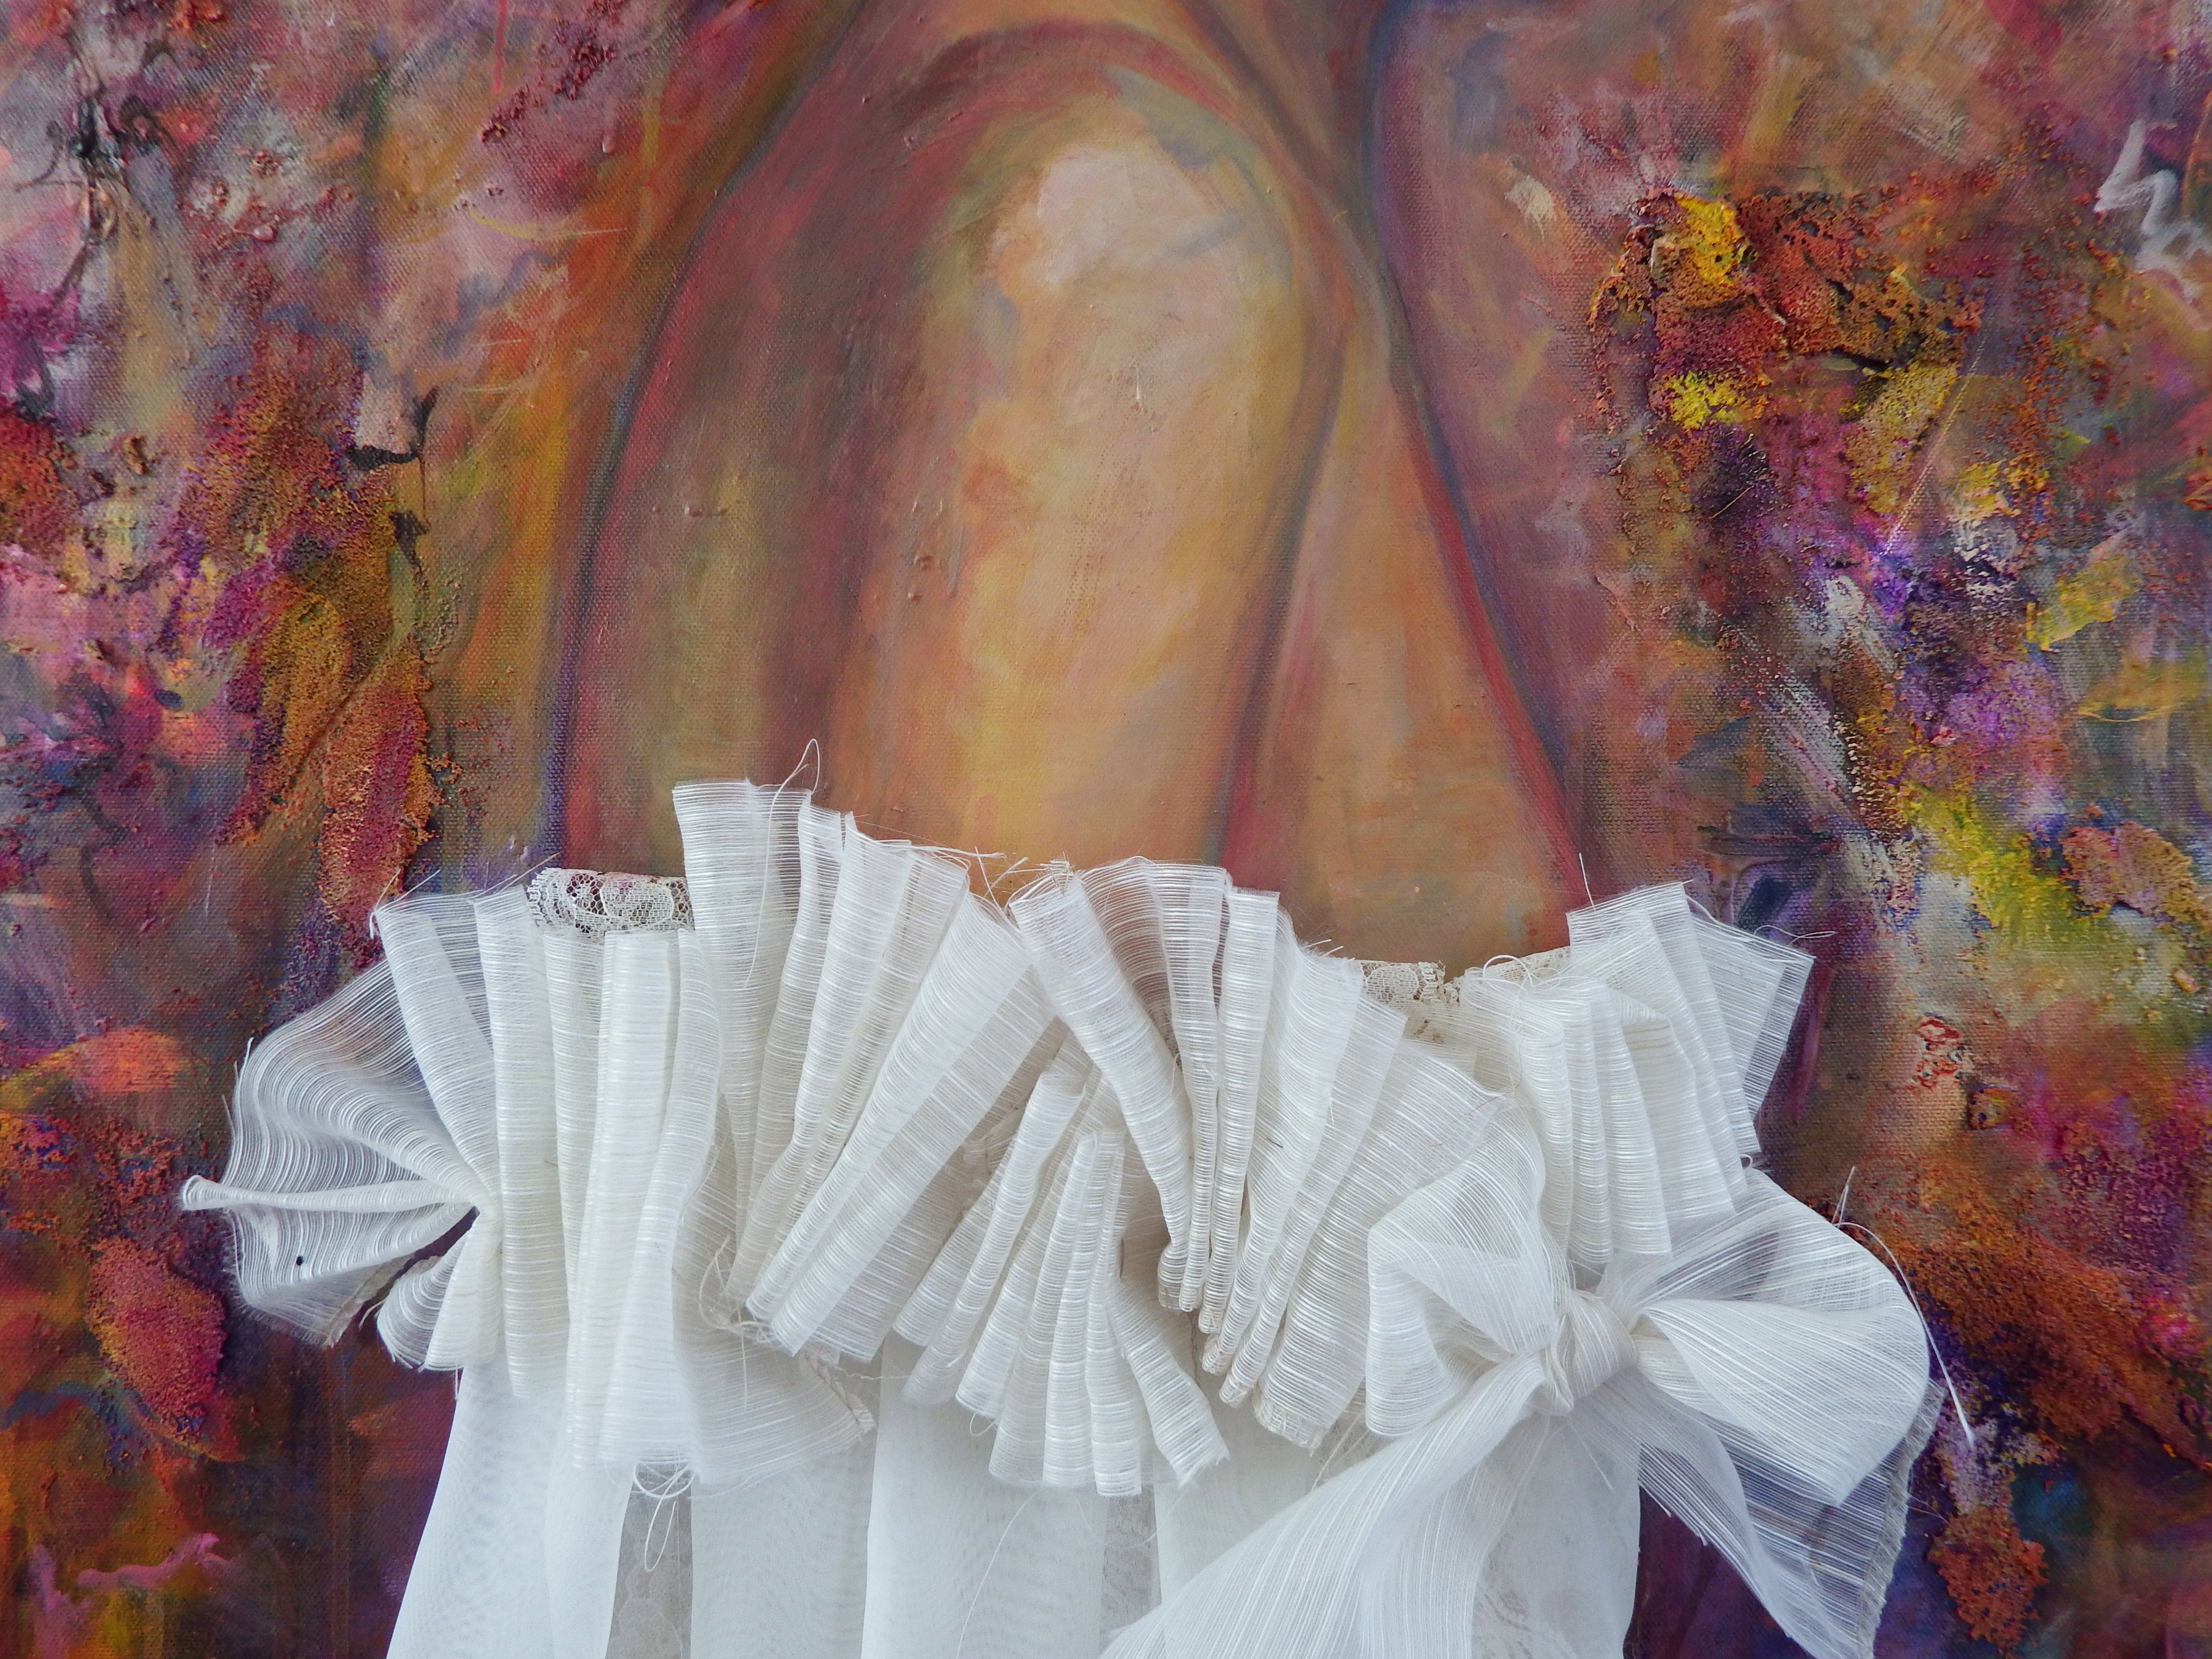 Between the Lilies, Mixed Media on Canvas, by Sabrina Brett 7